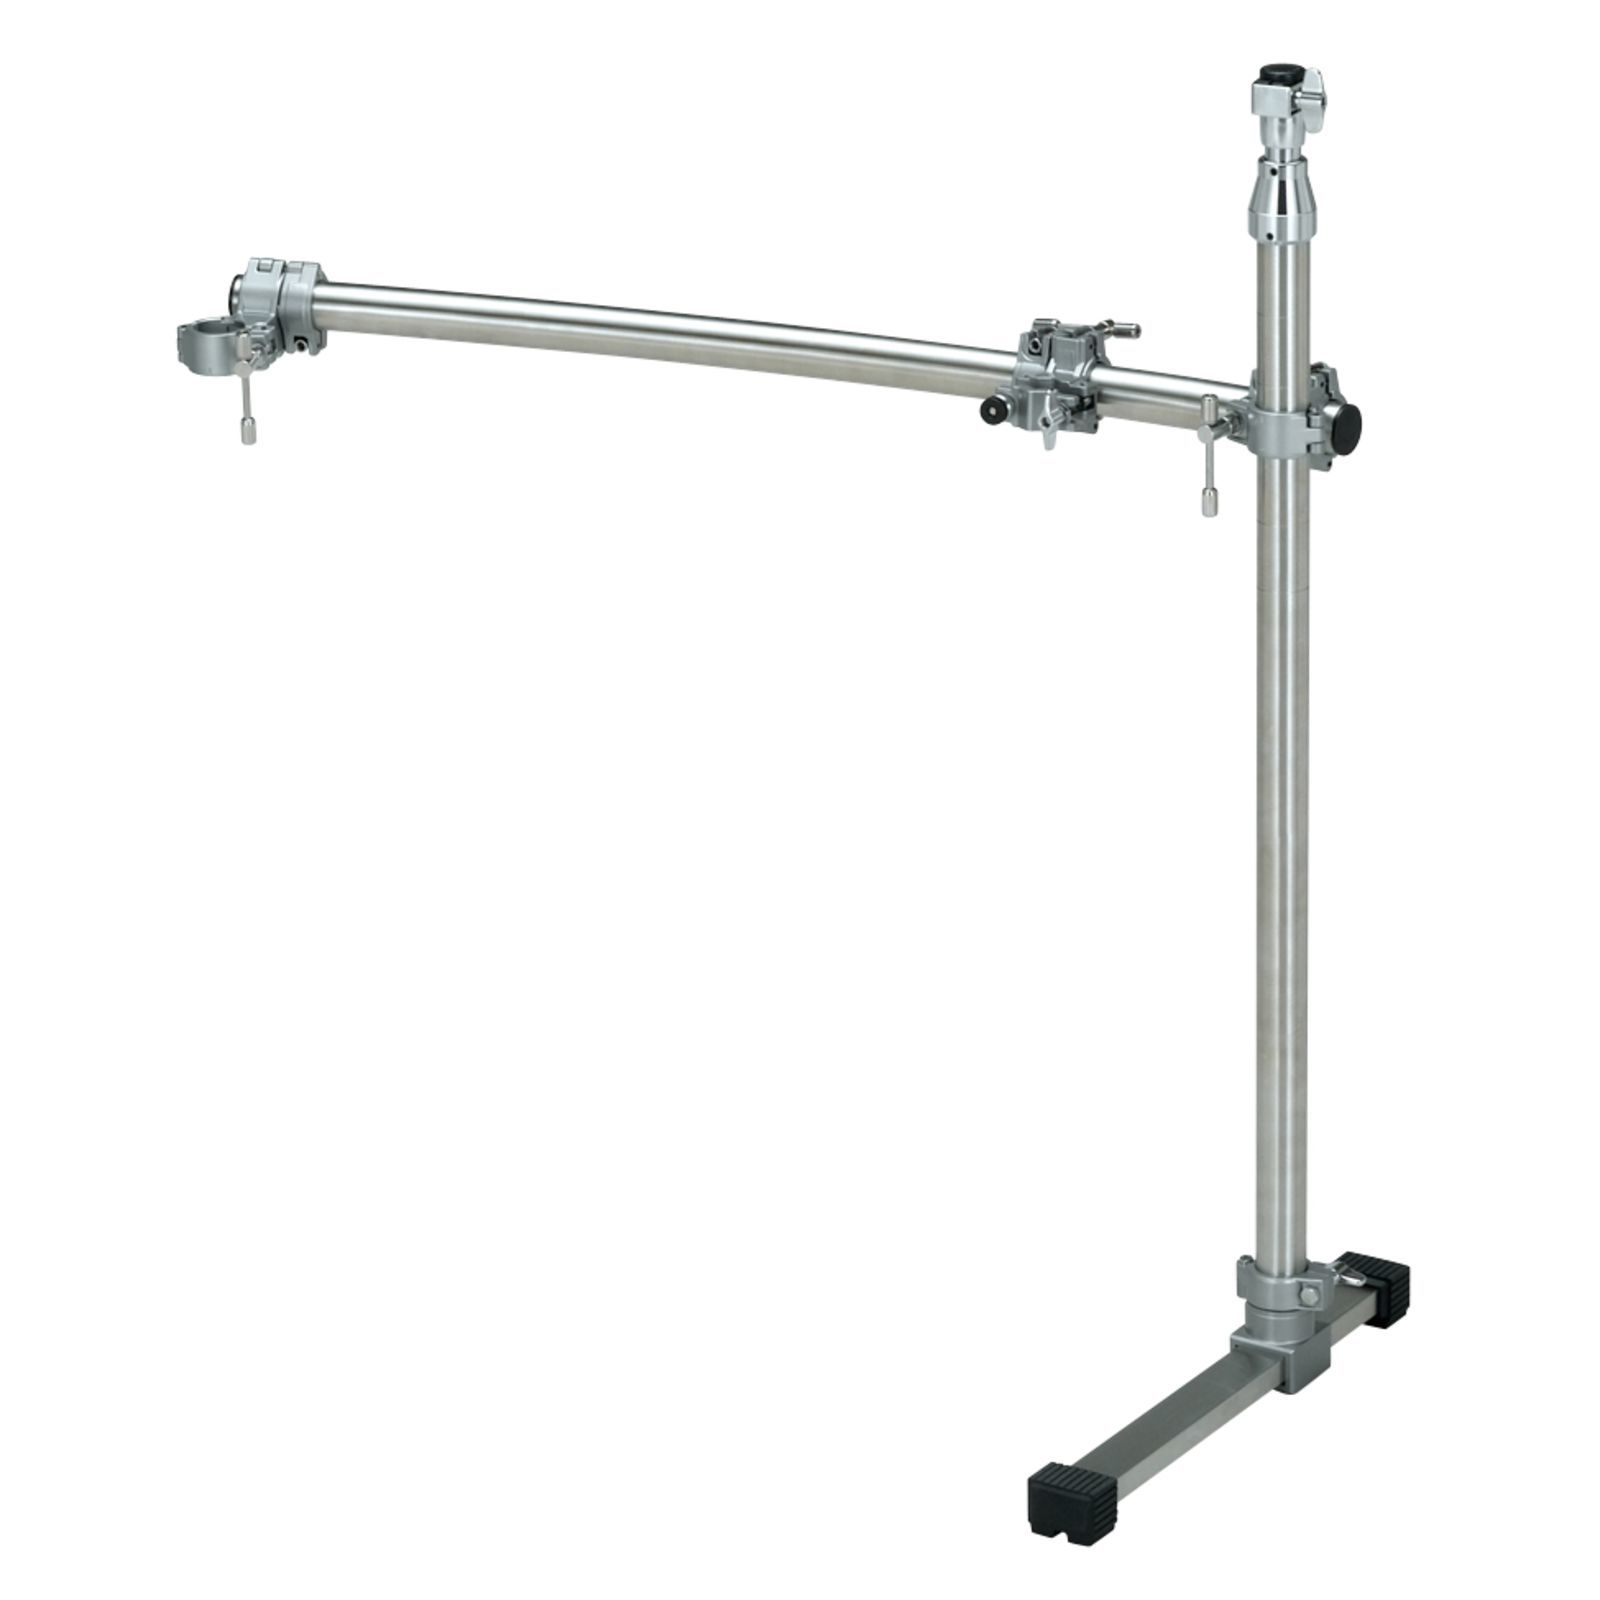 Tama DrumRack Extension, 90cm, Power Tower, B-Stock Produktbild